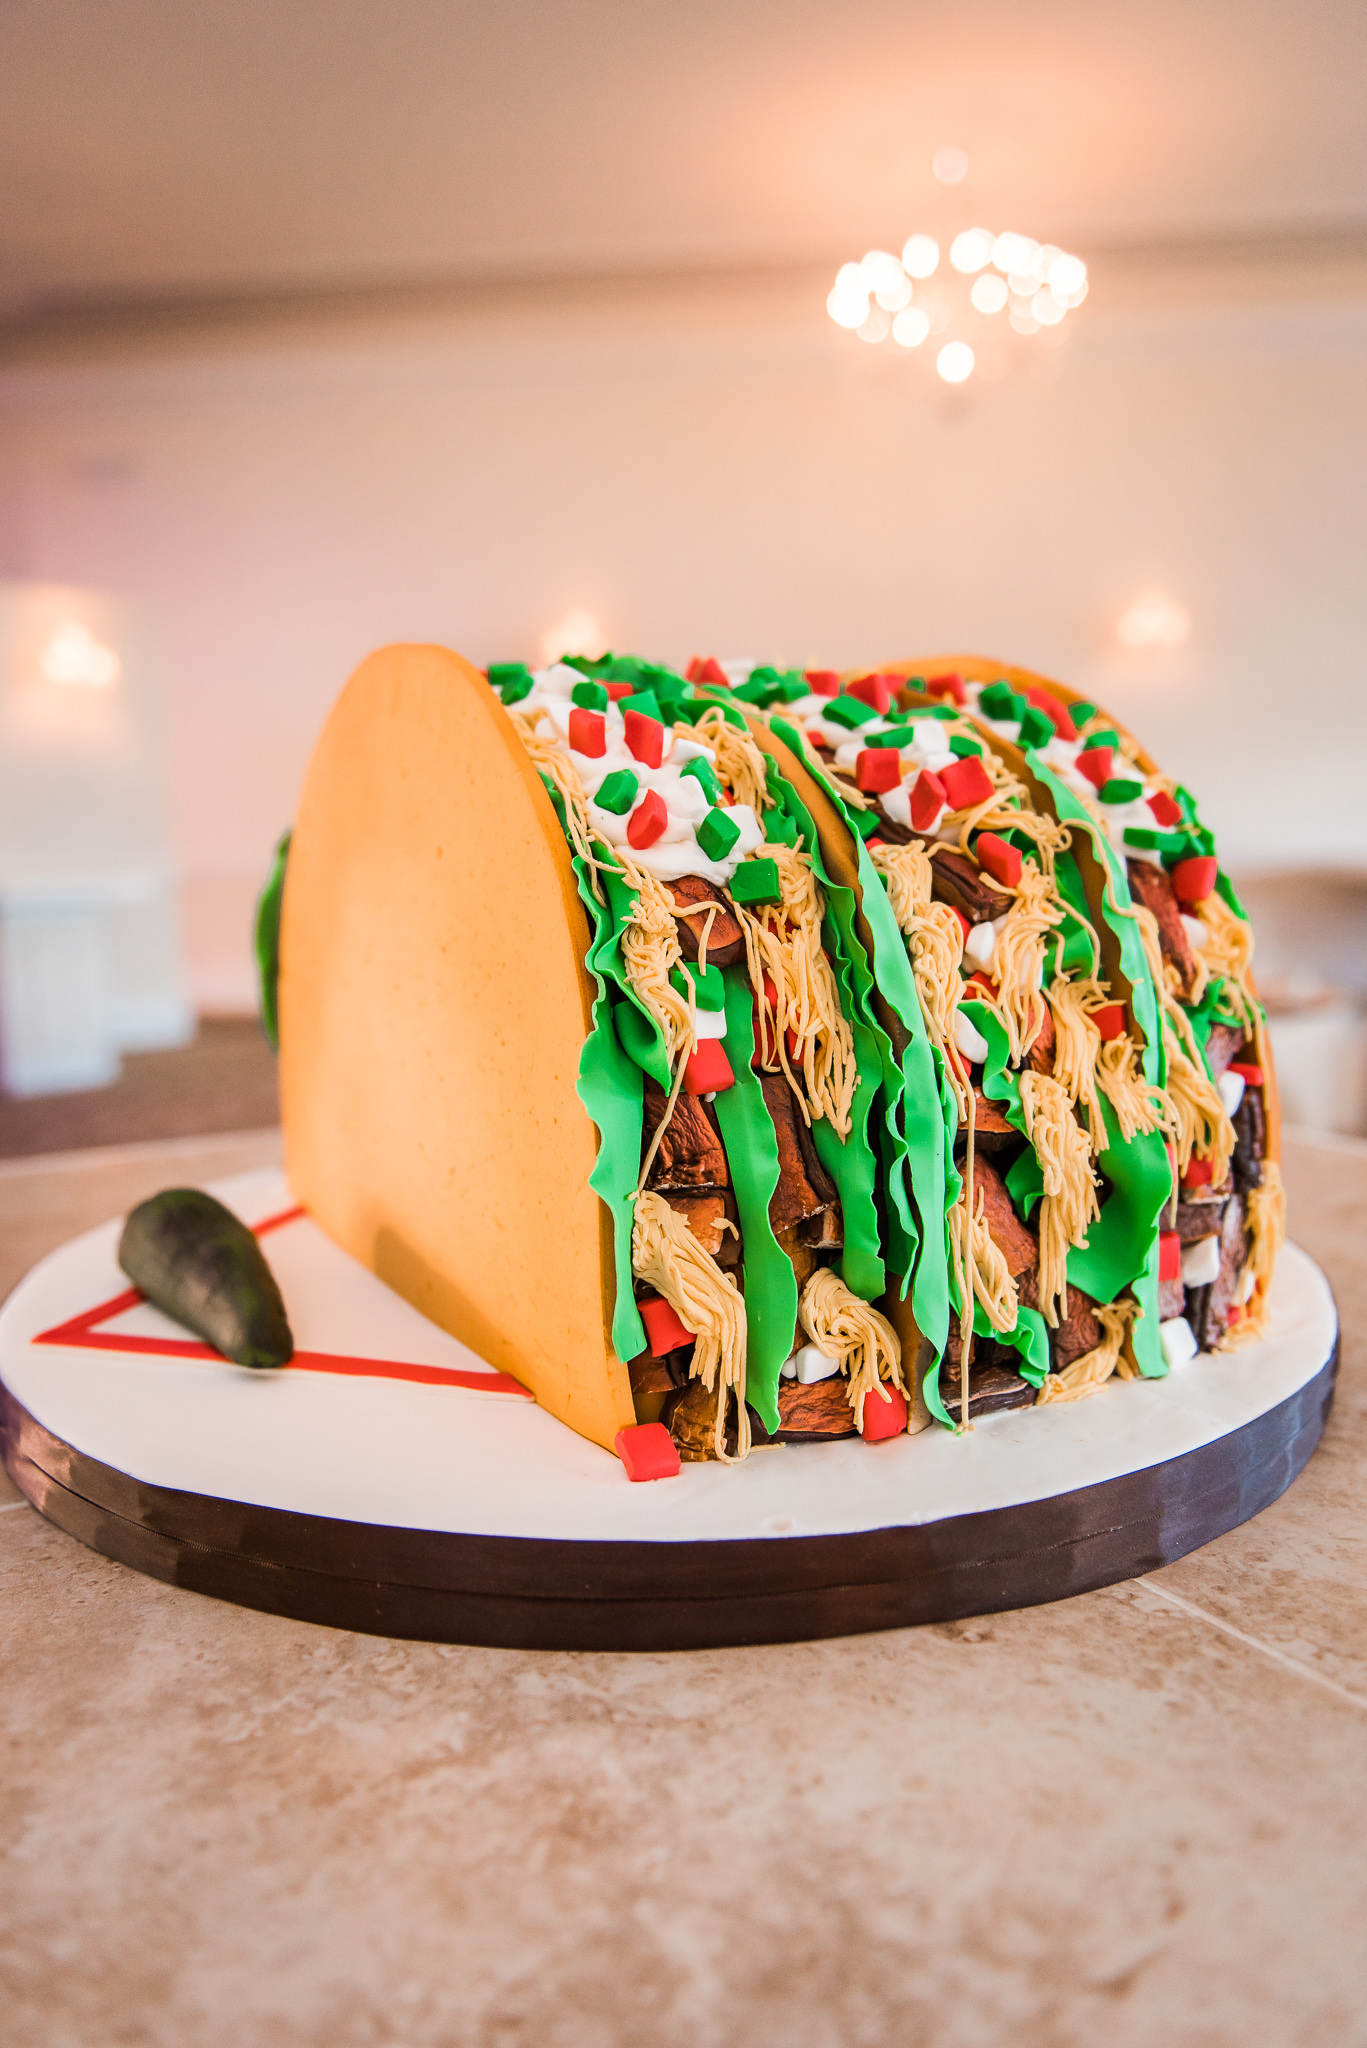 Taco Shaped Cake | Cakes by Gina